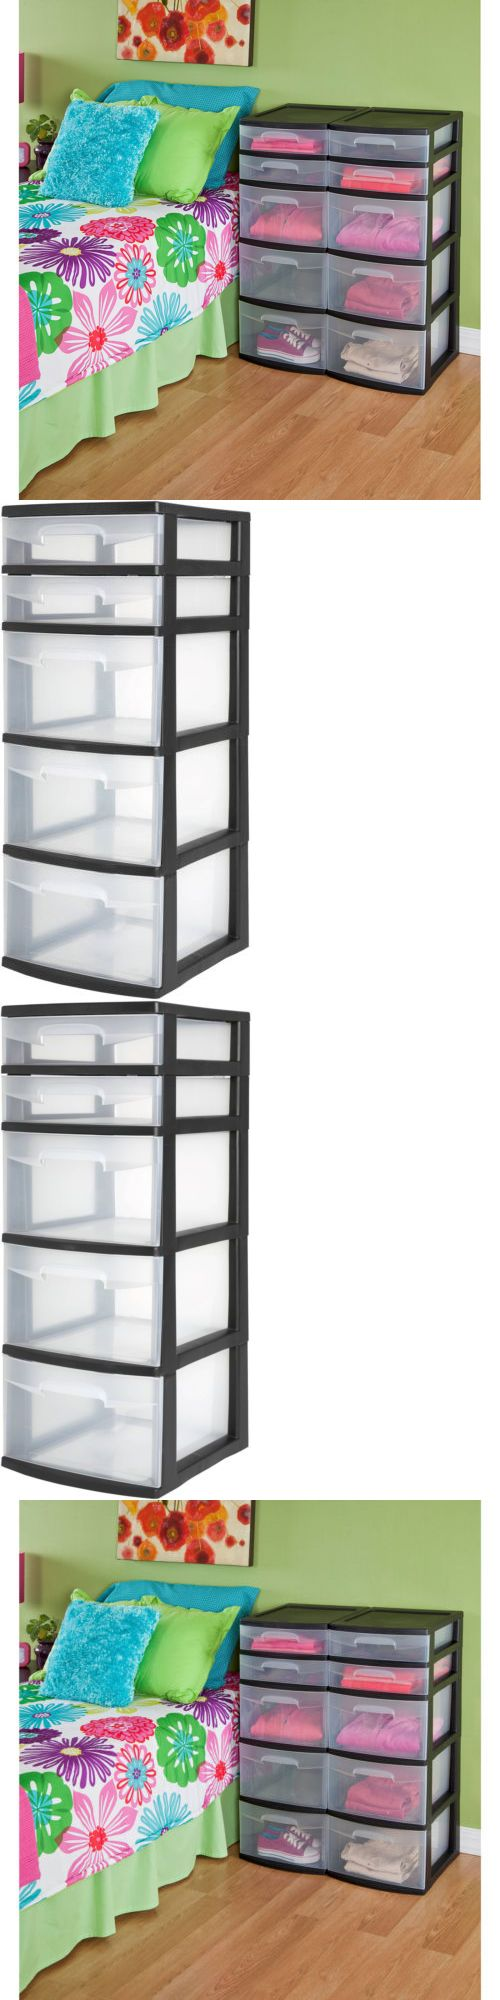 Storage Bins and Baskets 159898: Sterilite 5 Drawer Tower- Black (Available In Case Of 2 Or Single Unit) -> BUY IT NOW ONLY: $36.68 on eBay!